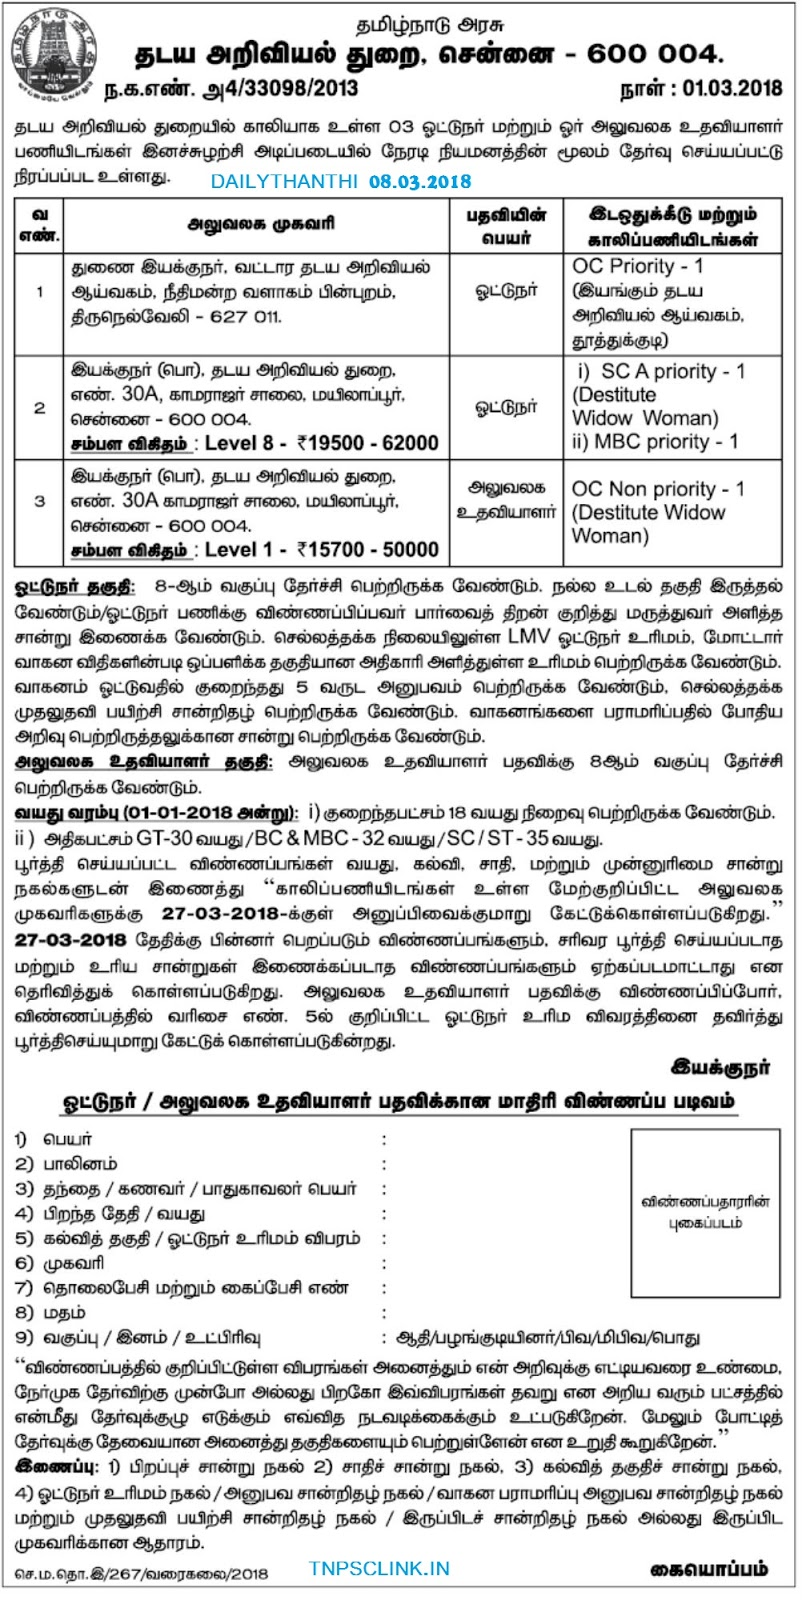 Tamil Nadu Forensic Dept Driver, Office Asst Vacancy Notification Application 08.03.2018